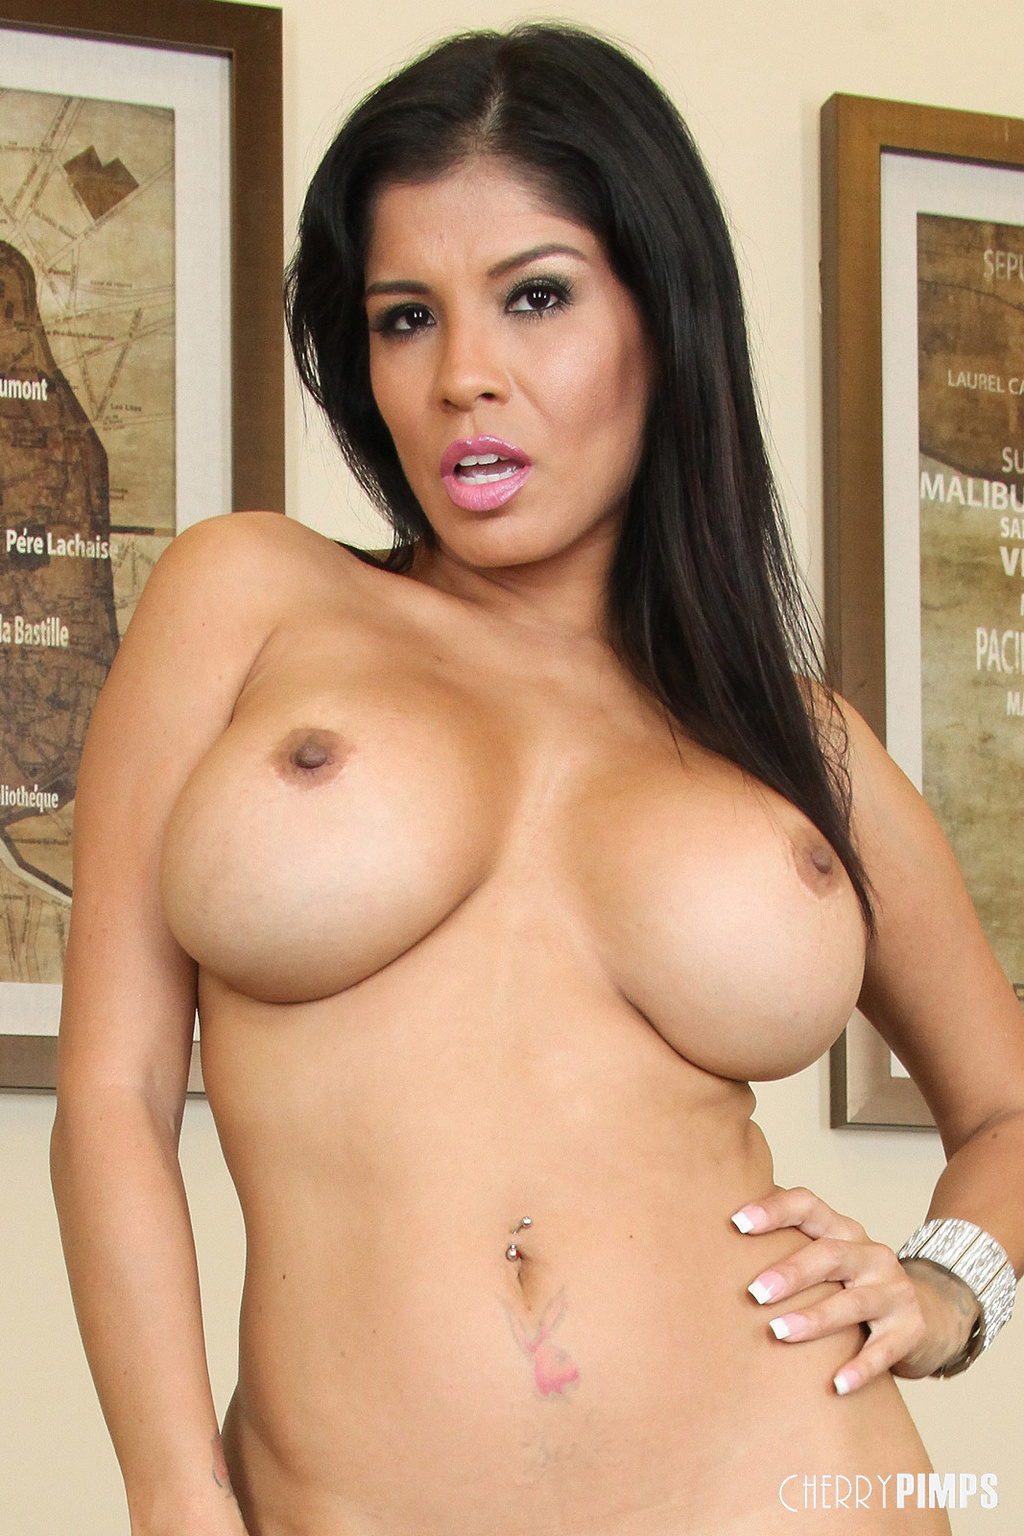 Busty Milf Porn Gallery alexis amore latina milf flashes busty curves